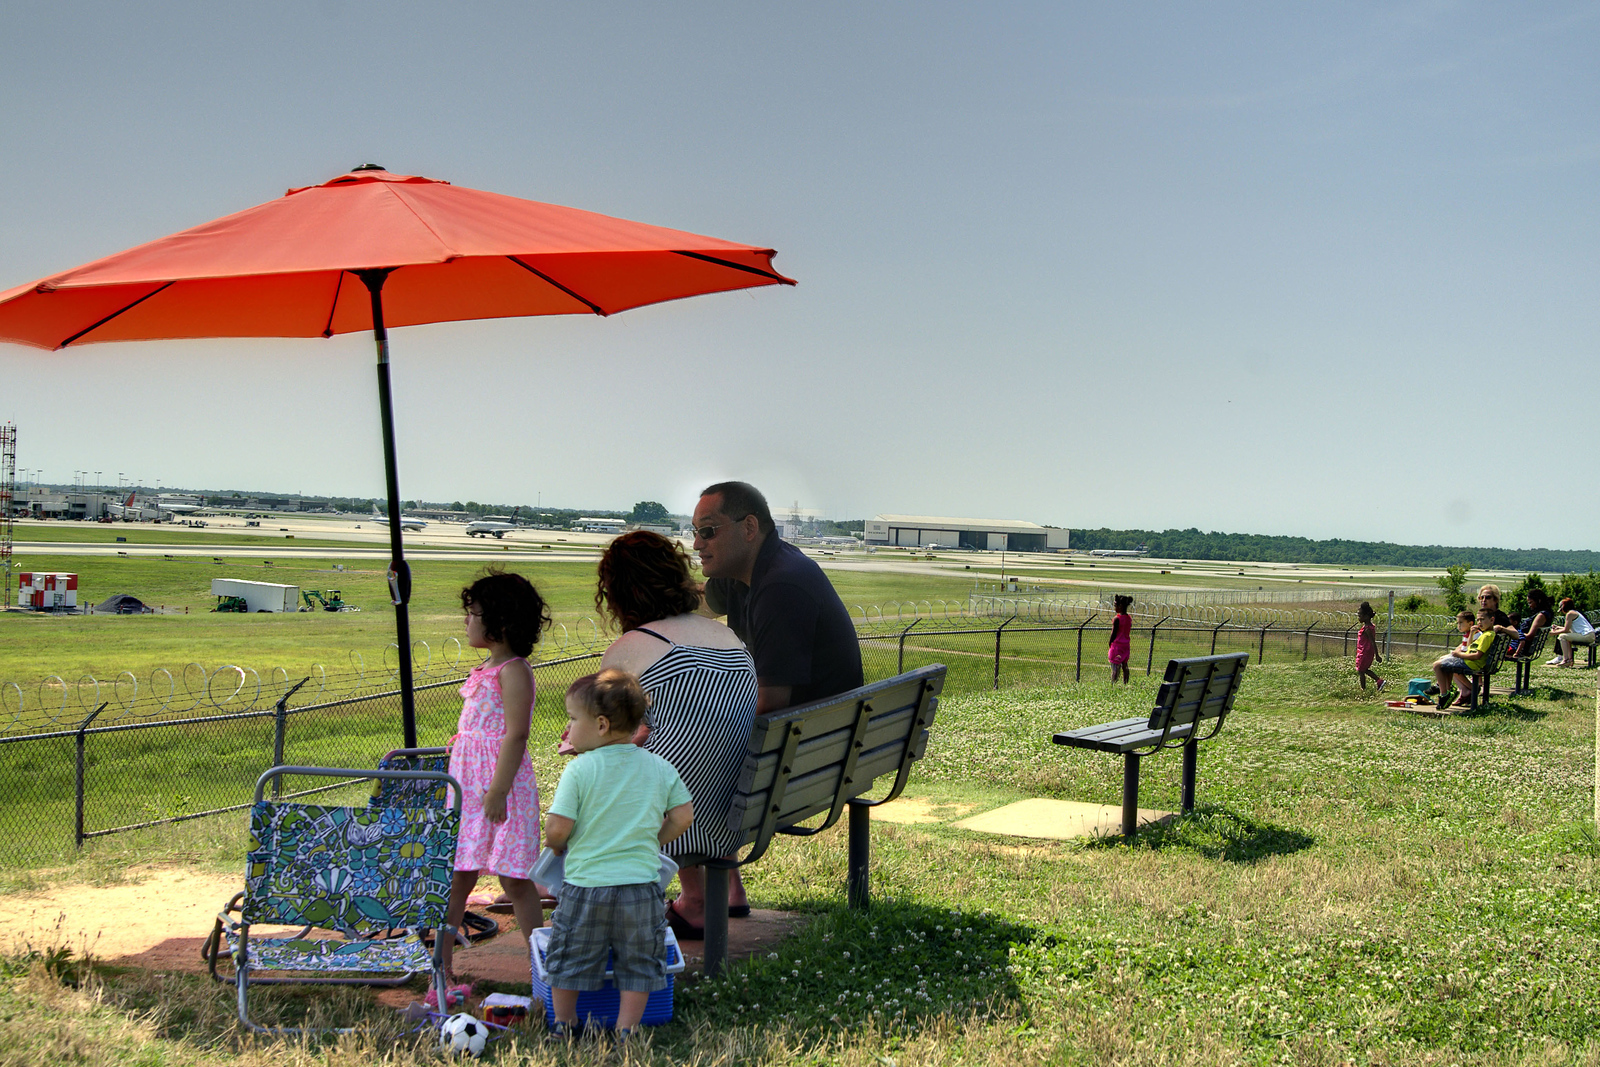 Families have picnics and sit under the shade of umbrellas while watching planes land and take off at the Airport Observation Park at Charlotte-Douglas International Airport in Charlotte, NC on Sunday, June 15, 2014. Copyright 2014 Jason Barnette